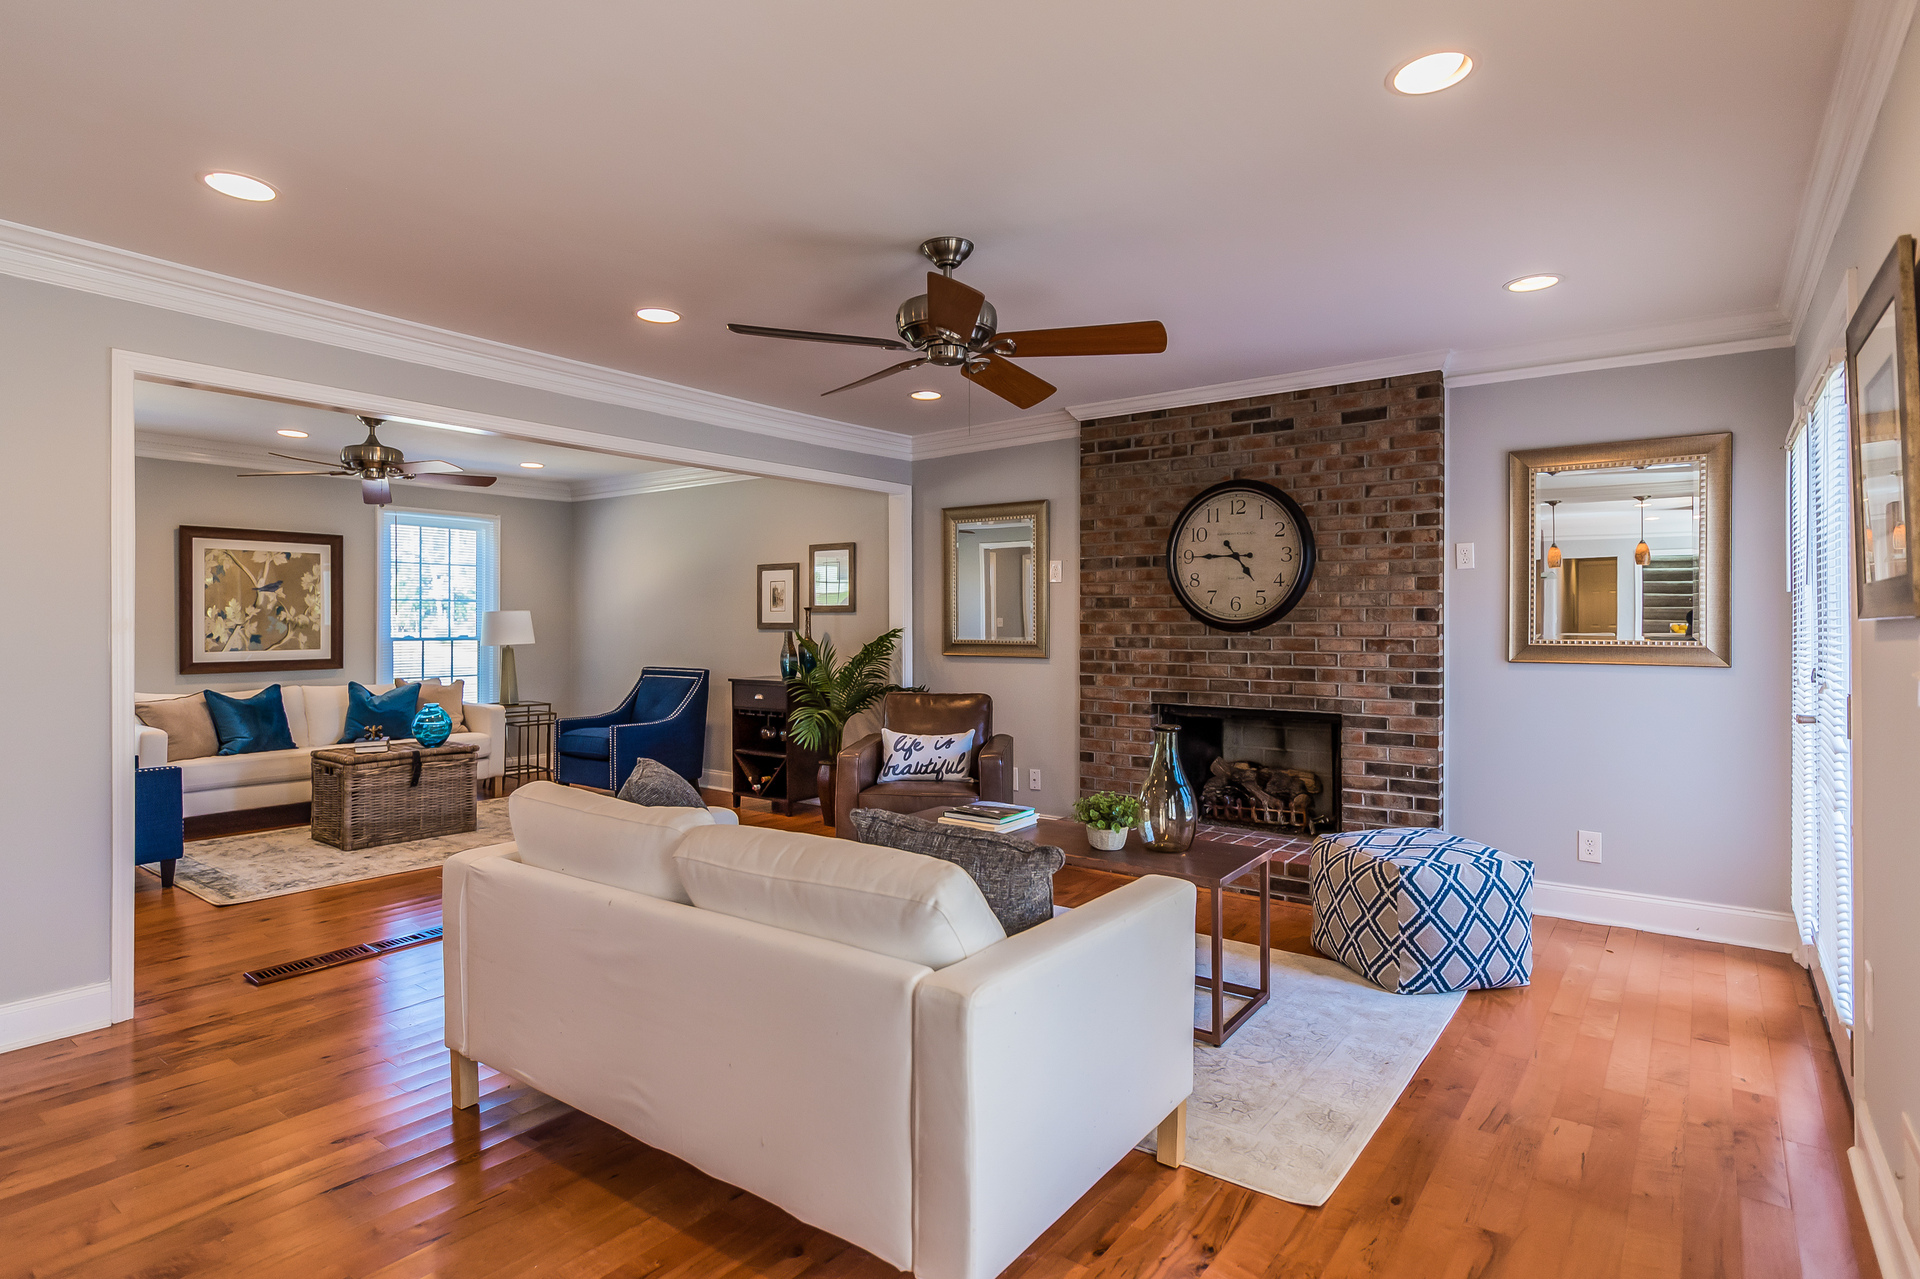 Best Home Staging Service in Buckhead